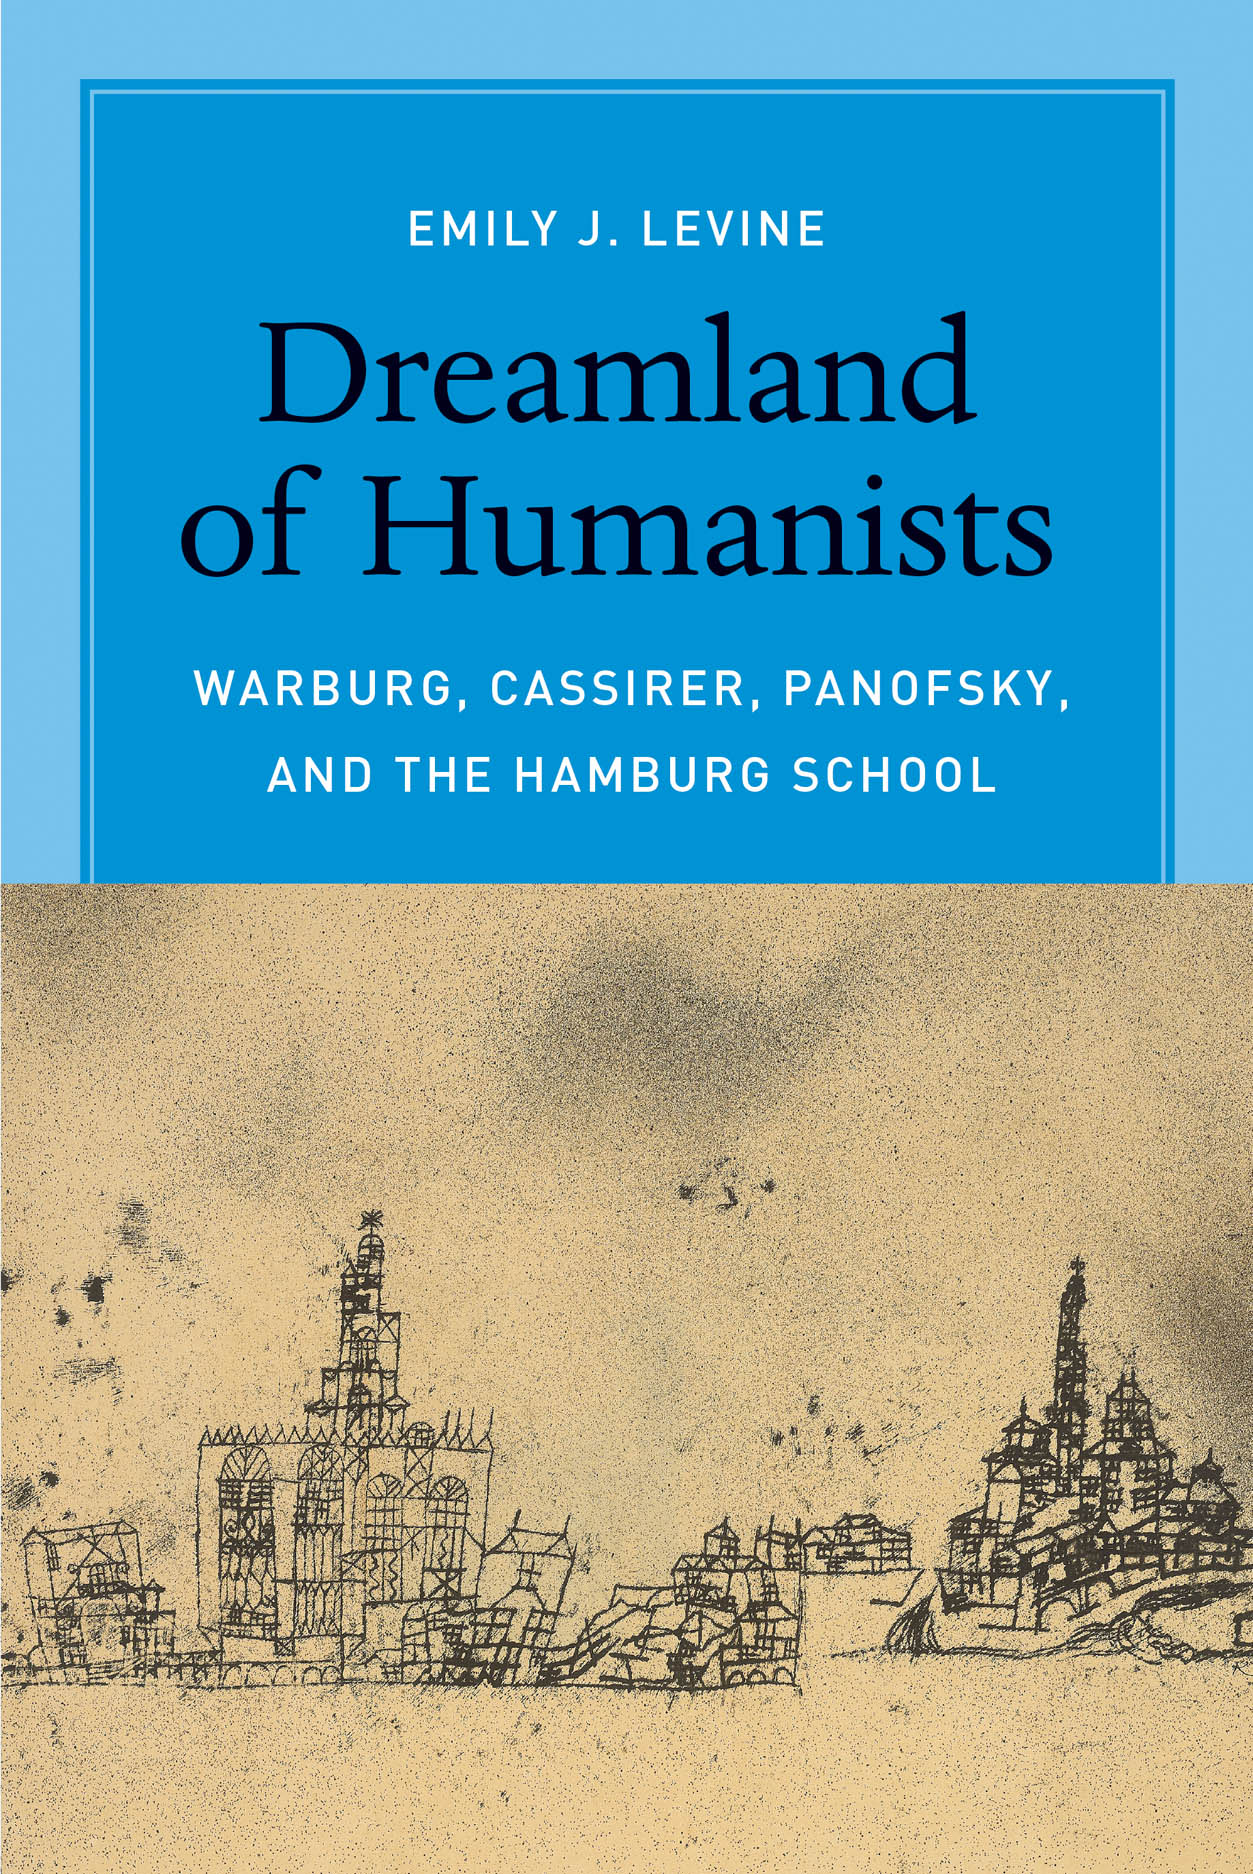 Dreamland of Humanists: Warburg, Cassirer, Panofsky, and the Hamburg School